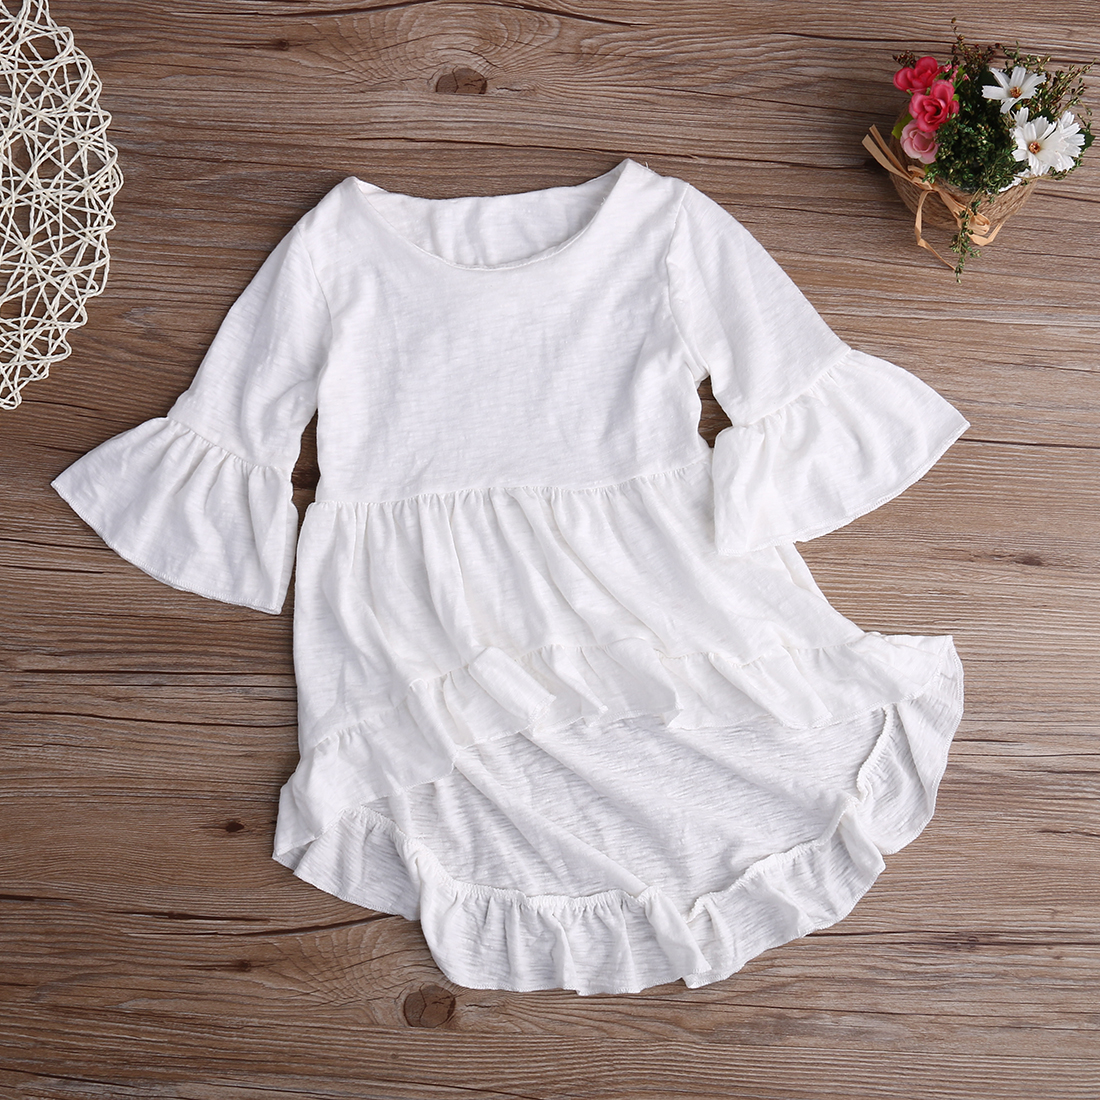 White Baby Girls Dress Frills Flare Sleeve Top T-Shirt Party Ruffles Hem Dresses 1-6Y girls tiered ruffle hem flare skirt